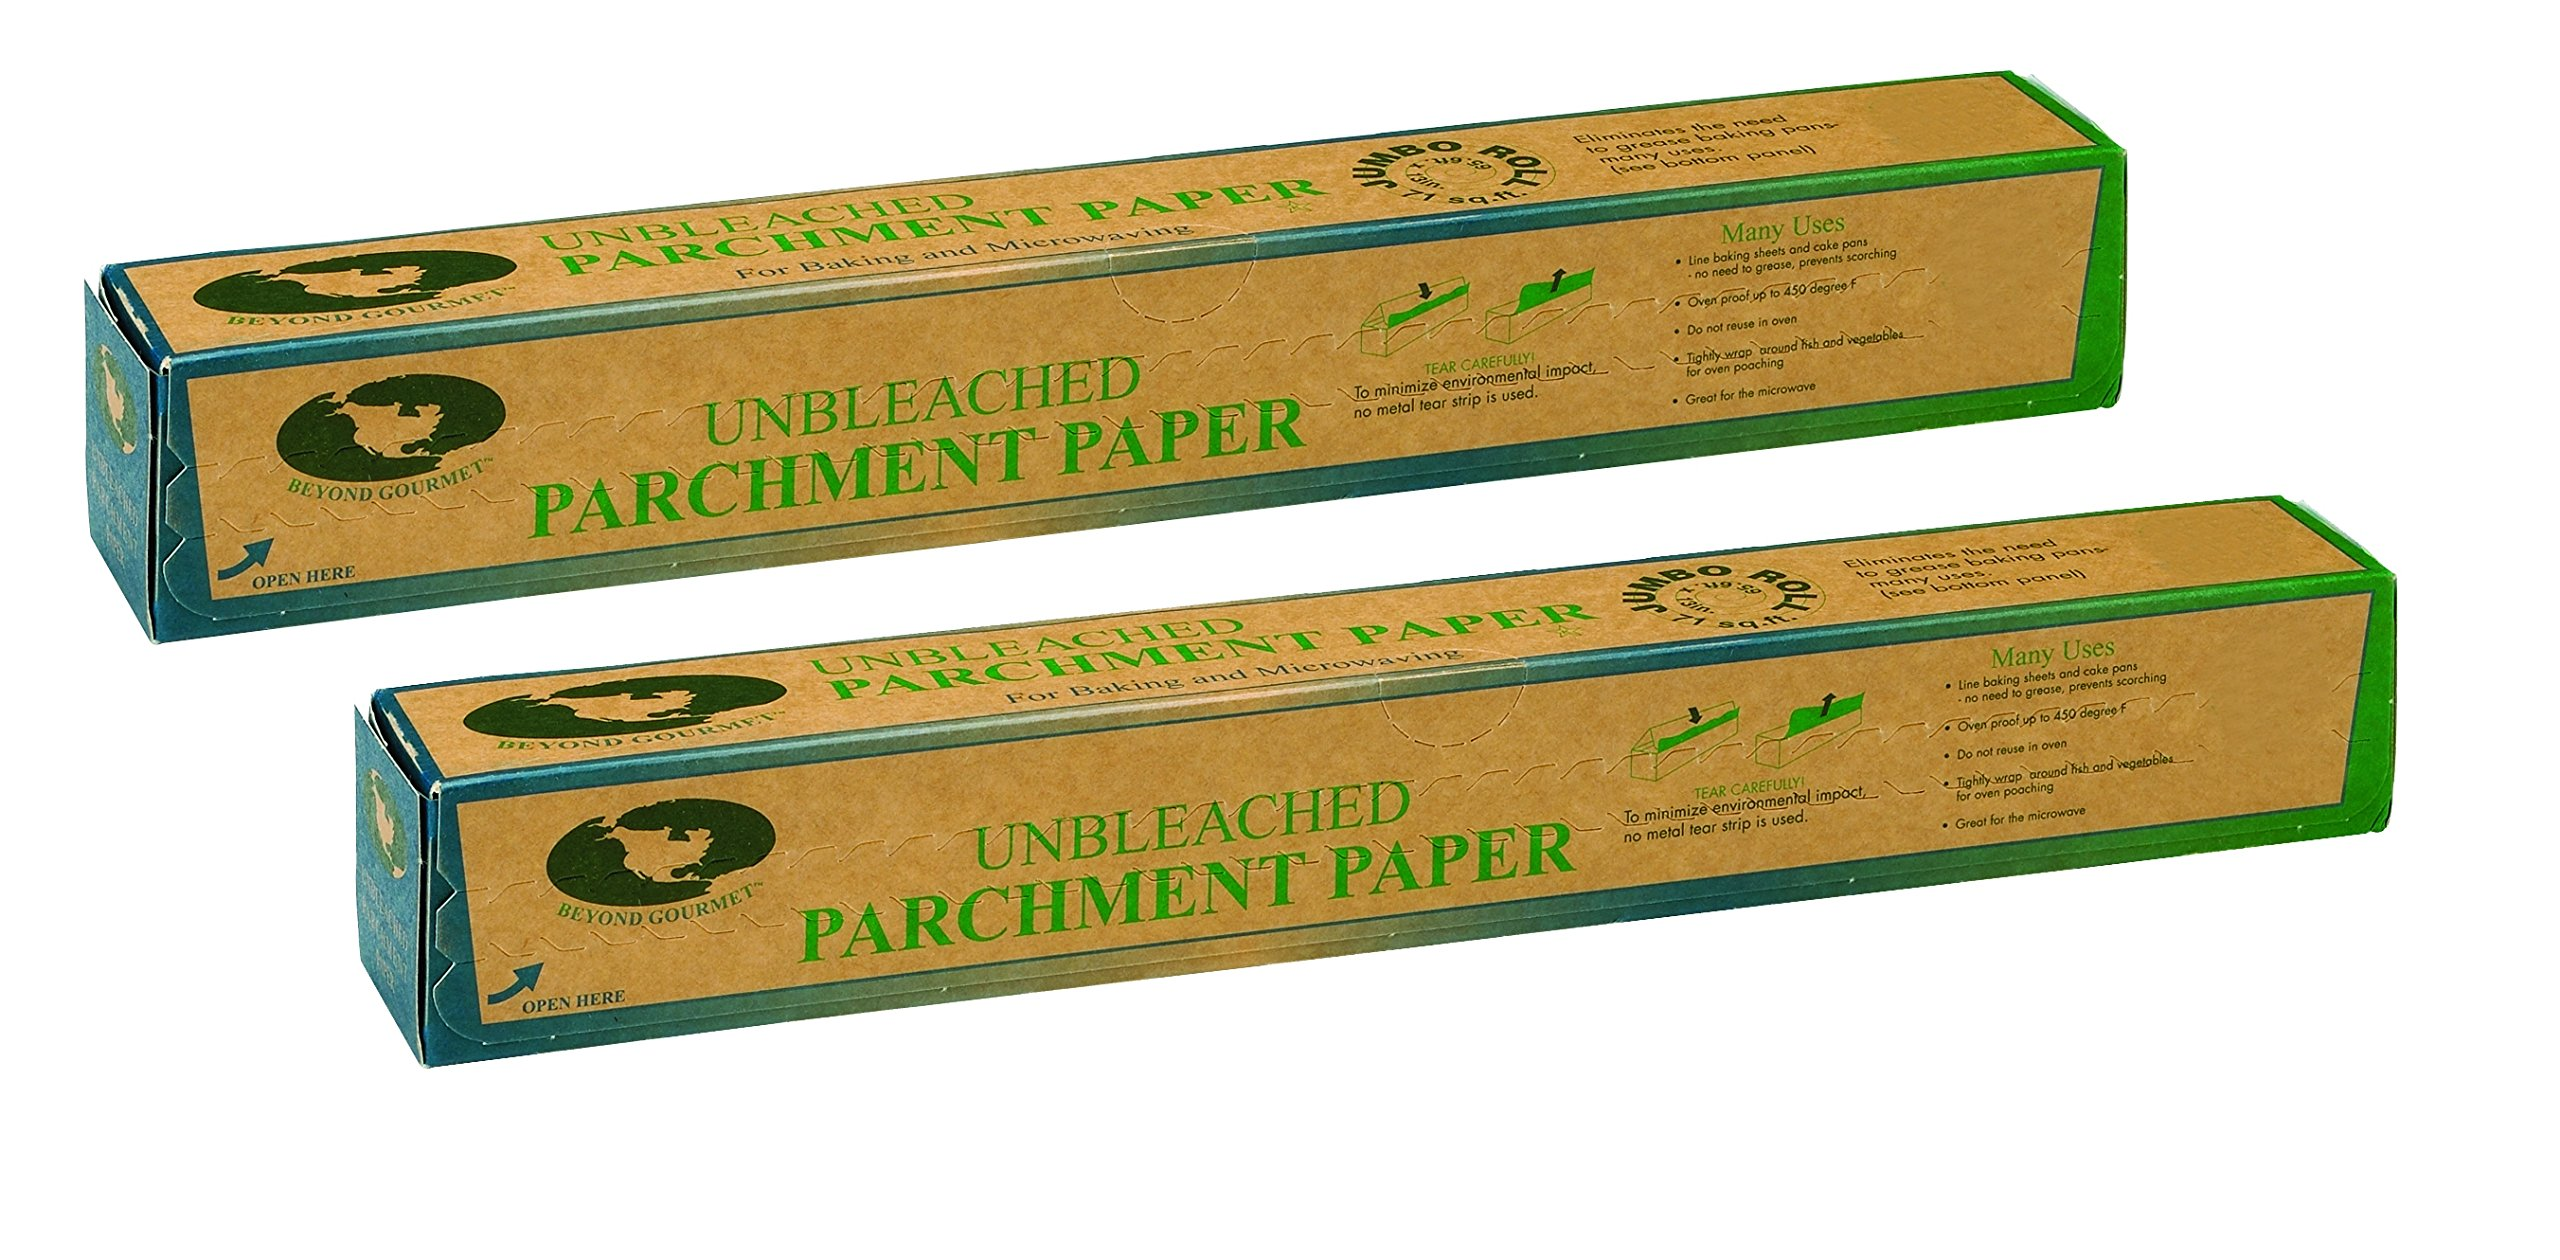 Beyond Gourmet Unbleached Non-Stick Parchment Paper, Made in Sweden, 71-Square-Feet, Set of 2 by Beyond Gourmet